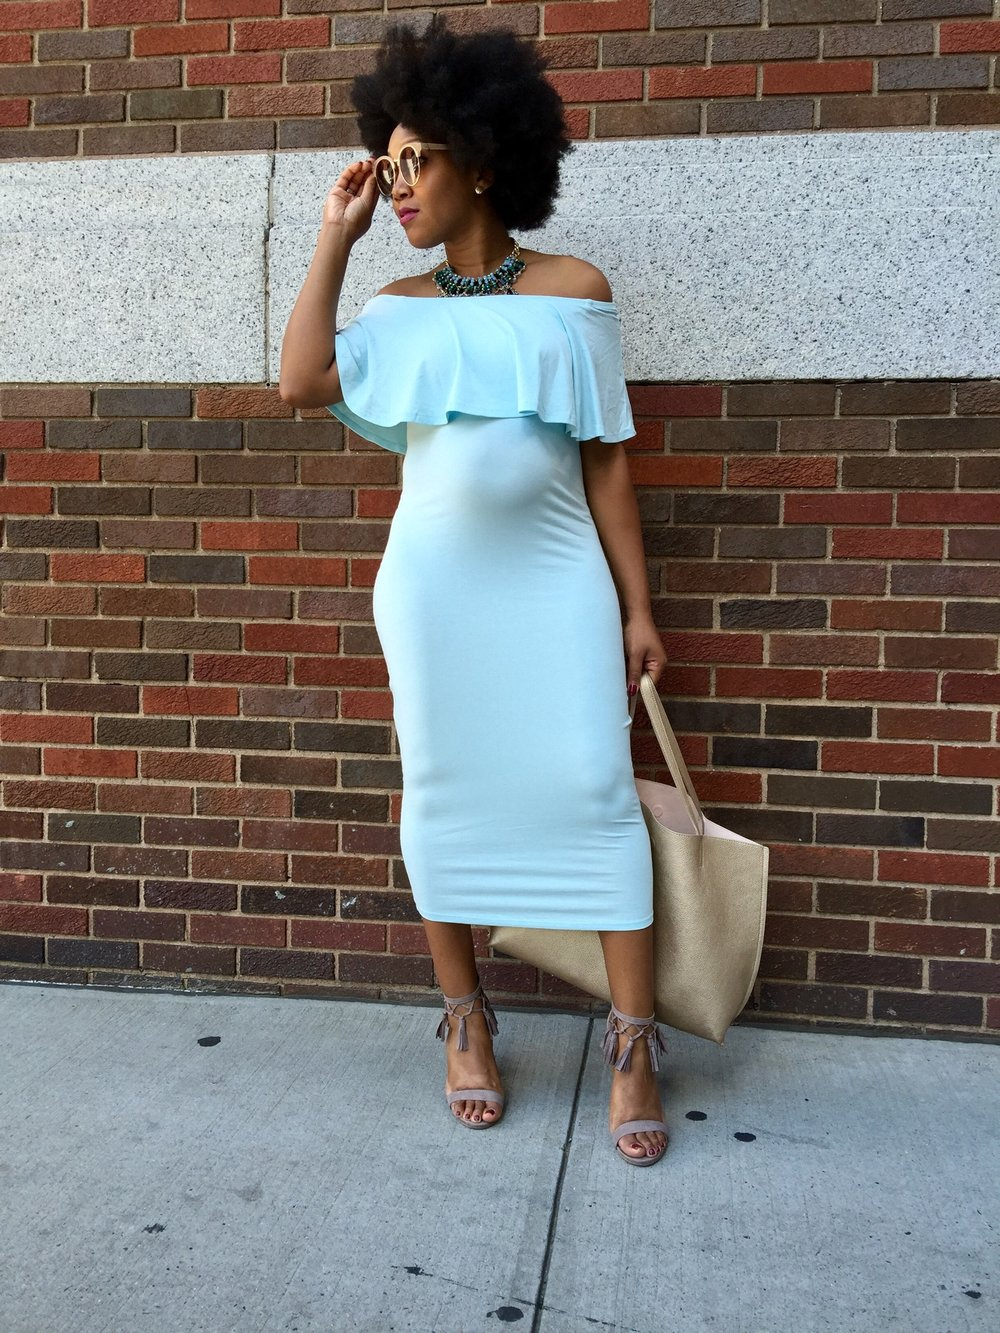 Nyfw series off the shoulder midi maternity dress luxeleblanc photo credit thee shopaholic thanks jessica xo ombrellifo Image collections